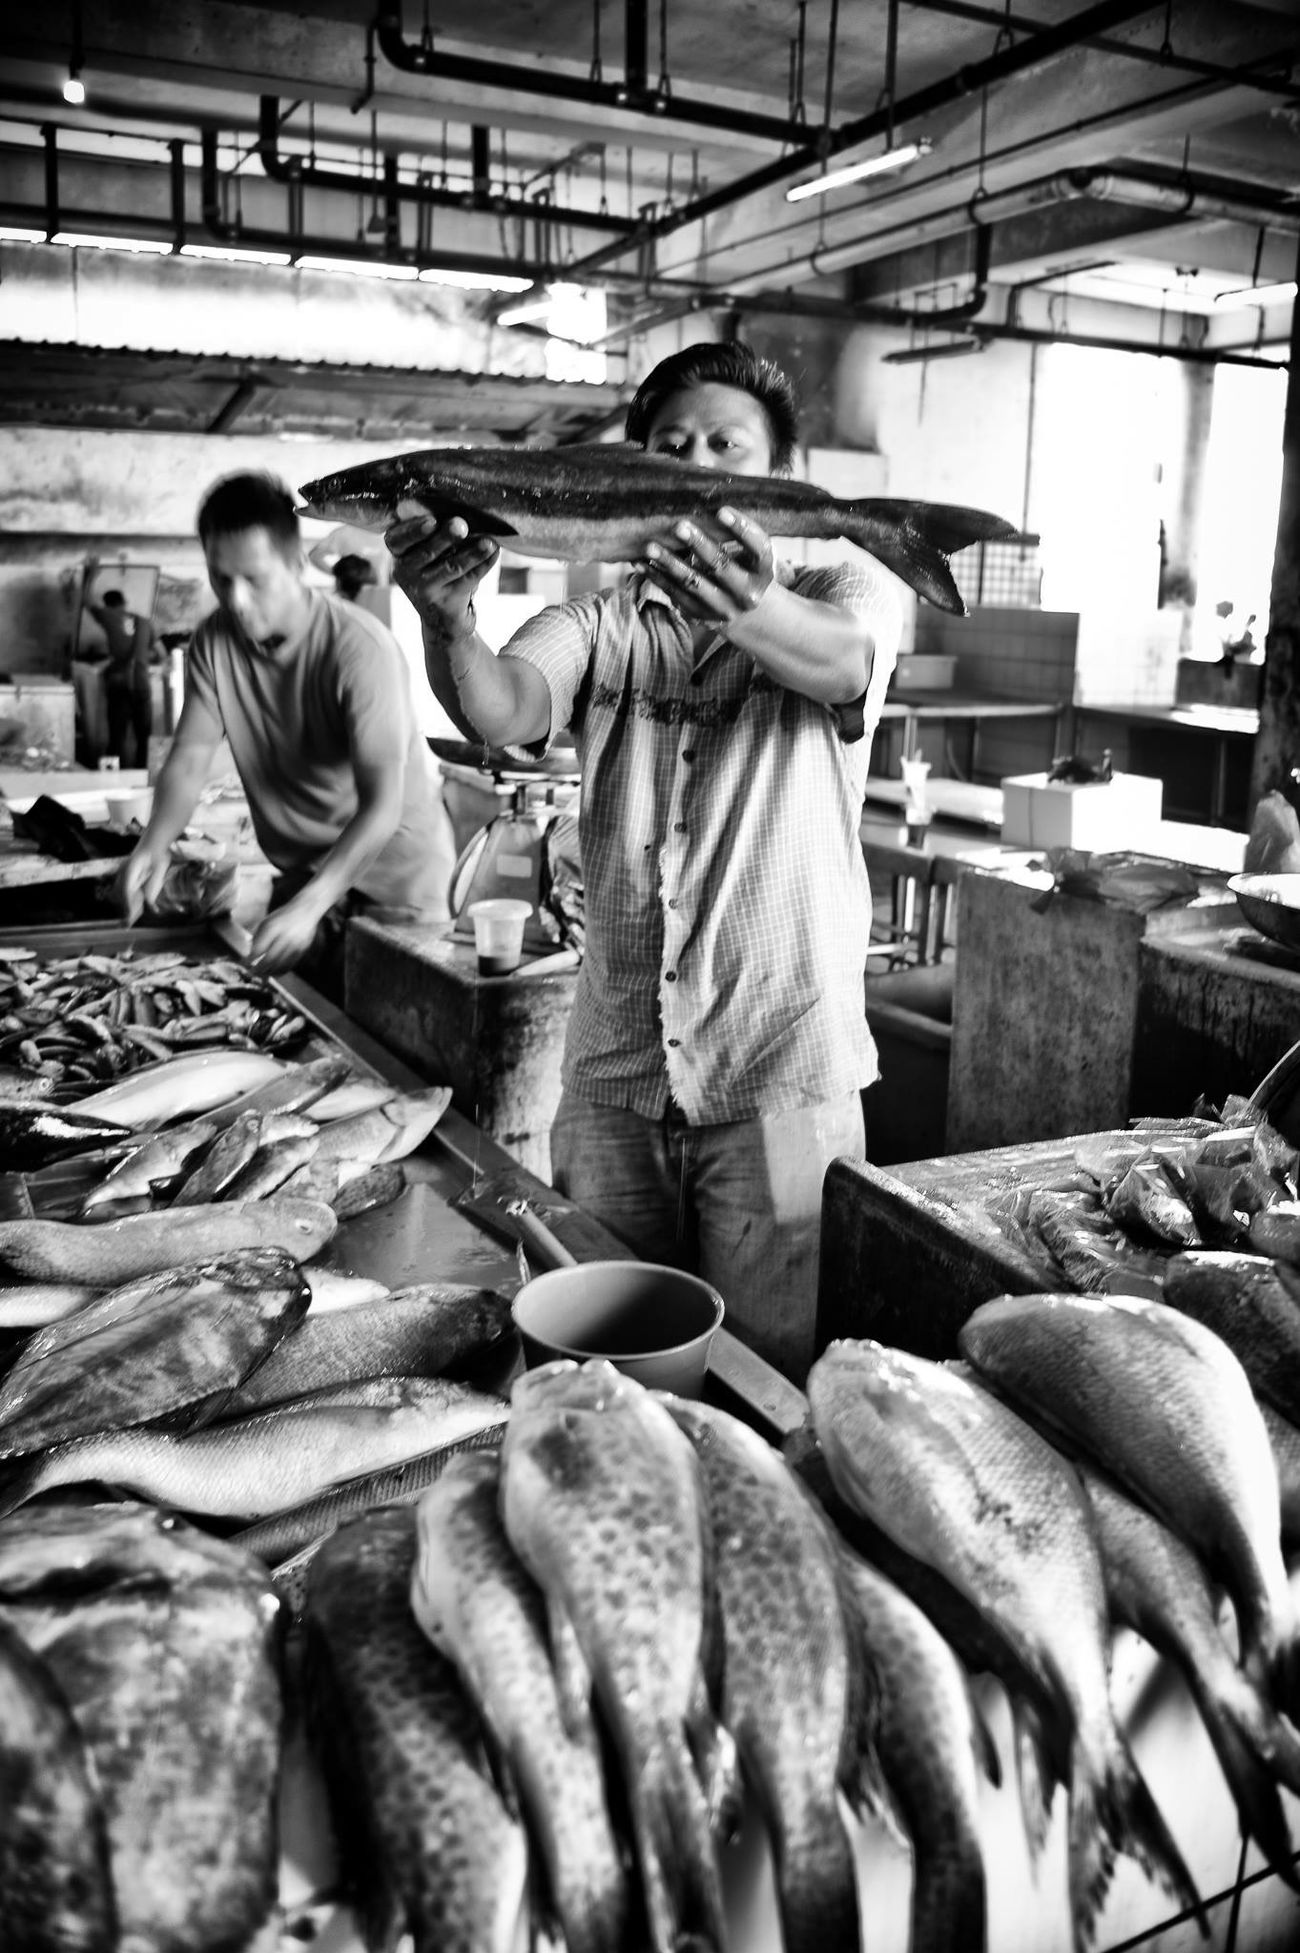 Fishmarket Leica Black And White Photography LeicaMMonochrome Spako Showcase: February Streetphotography First Eyeem Photo Luxembourg ASIA Sandakan Borneo Borneo Streetphoto_bw Streephotographer